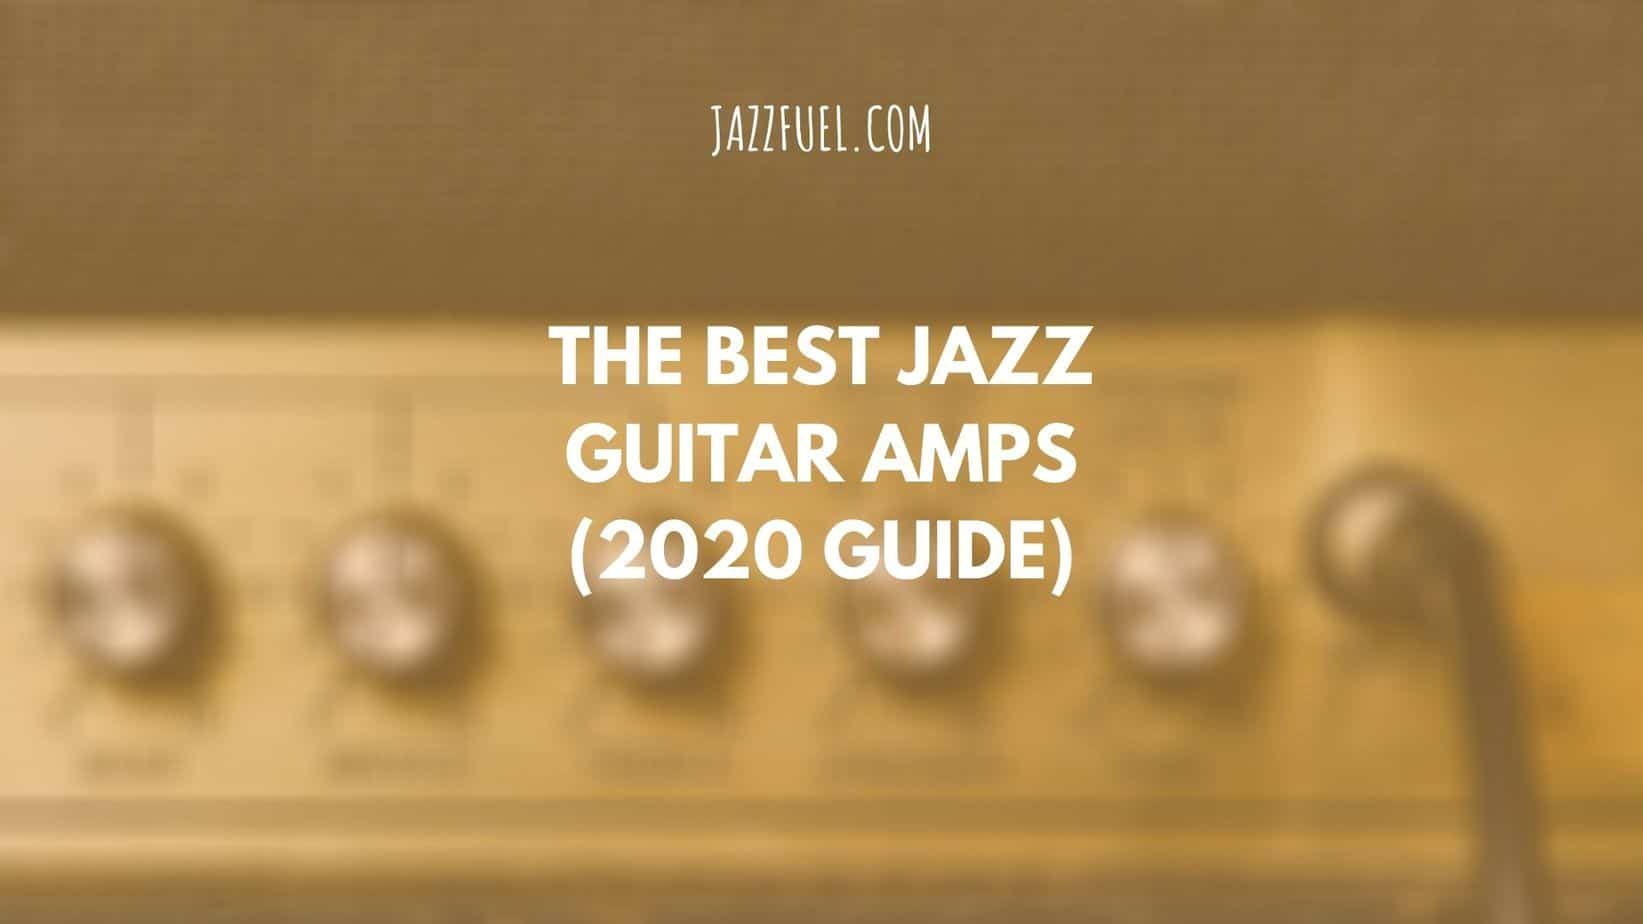 Jazz guitar amps